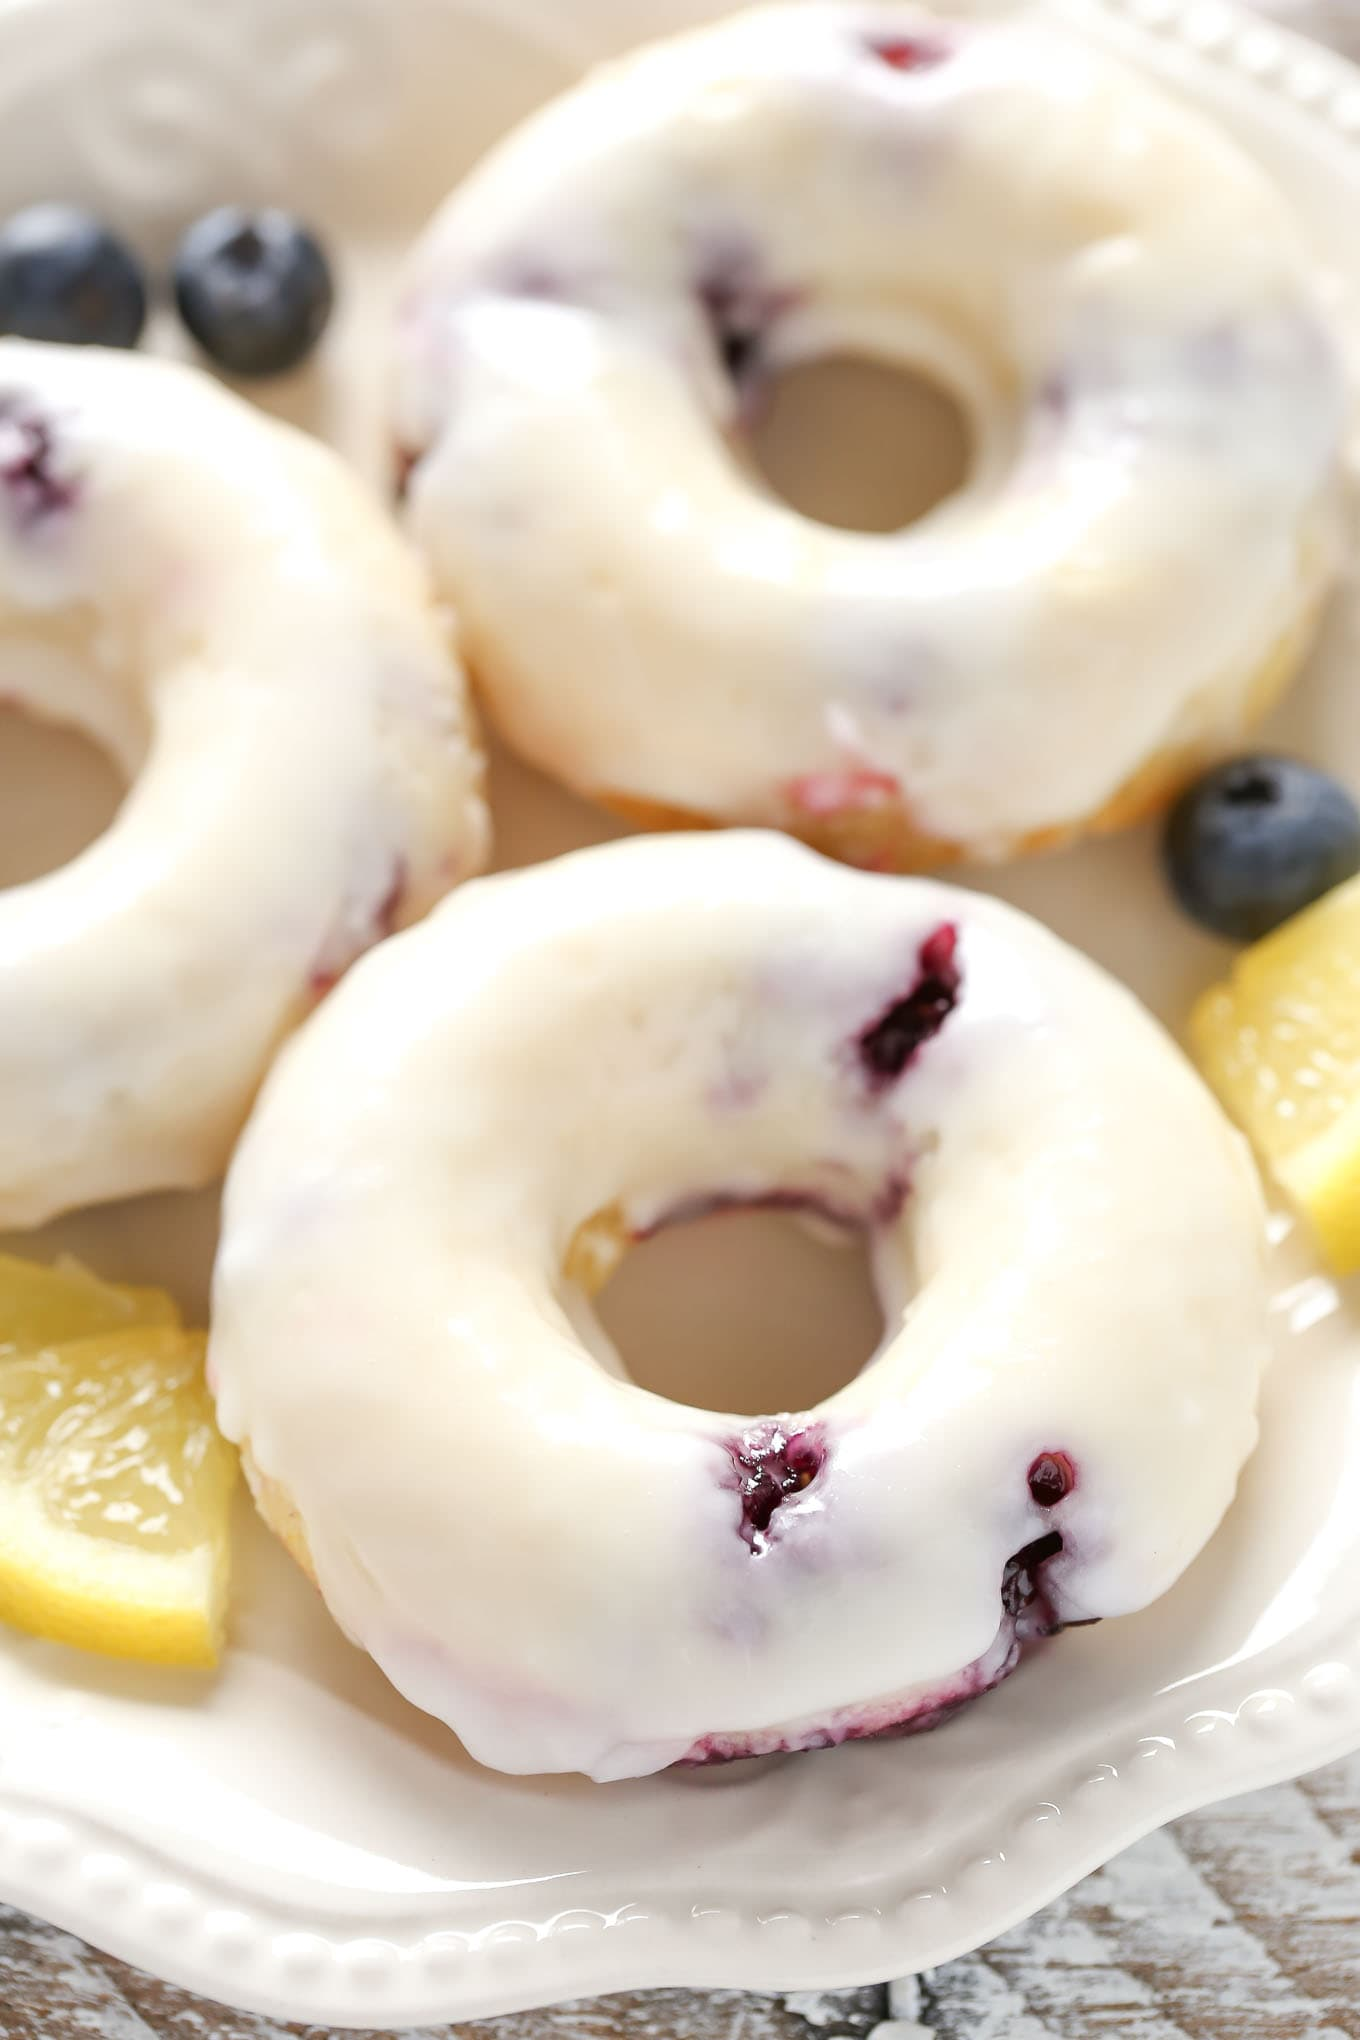 Lemon blueberry donuts topped with a simple 2-ingredient lemon glaze. These Baked Lemon Blueberry Donuts are incredibly easy to make and perfect for breakfast!